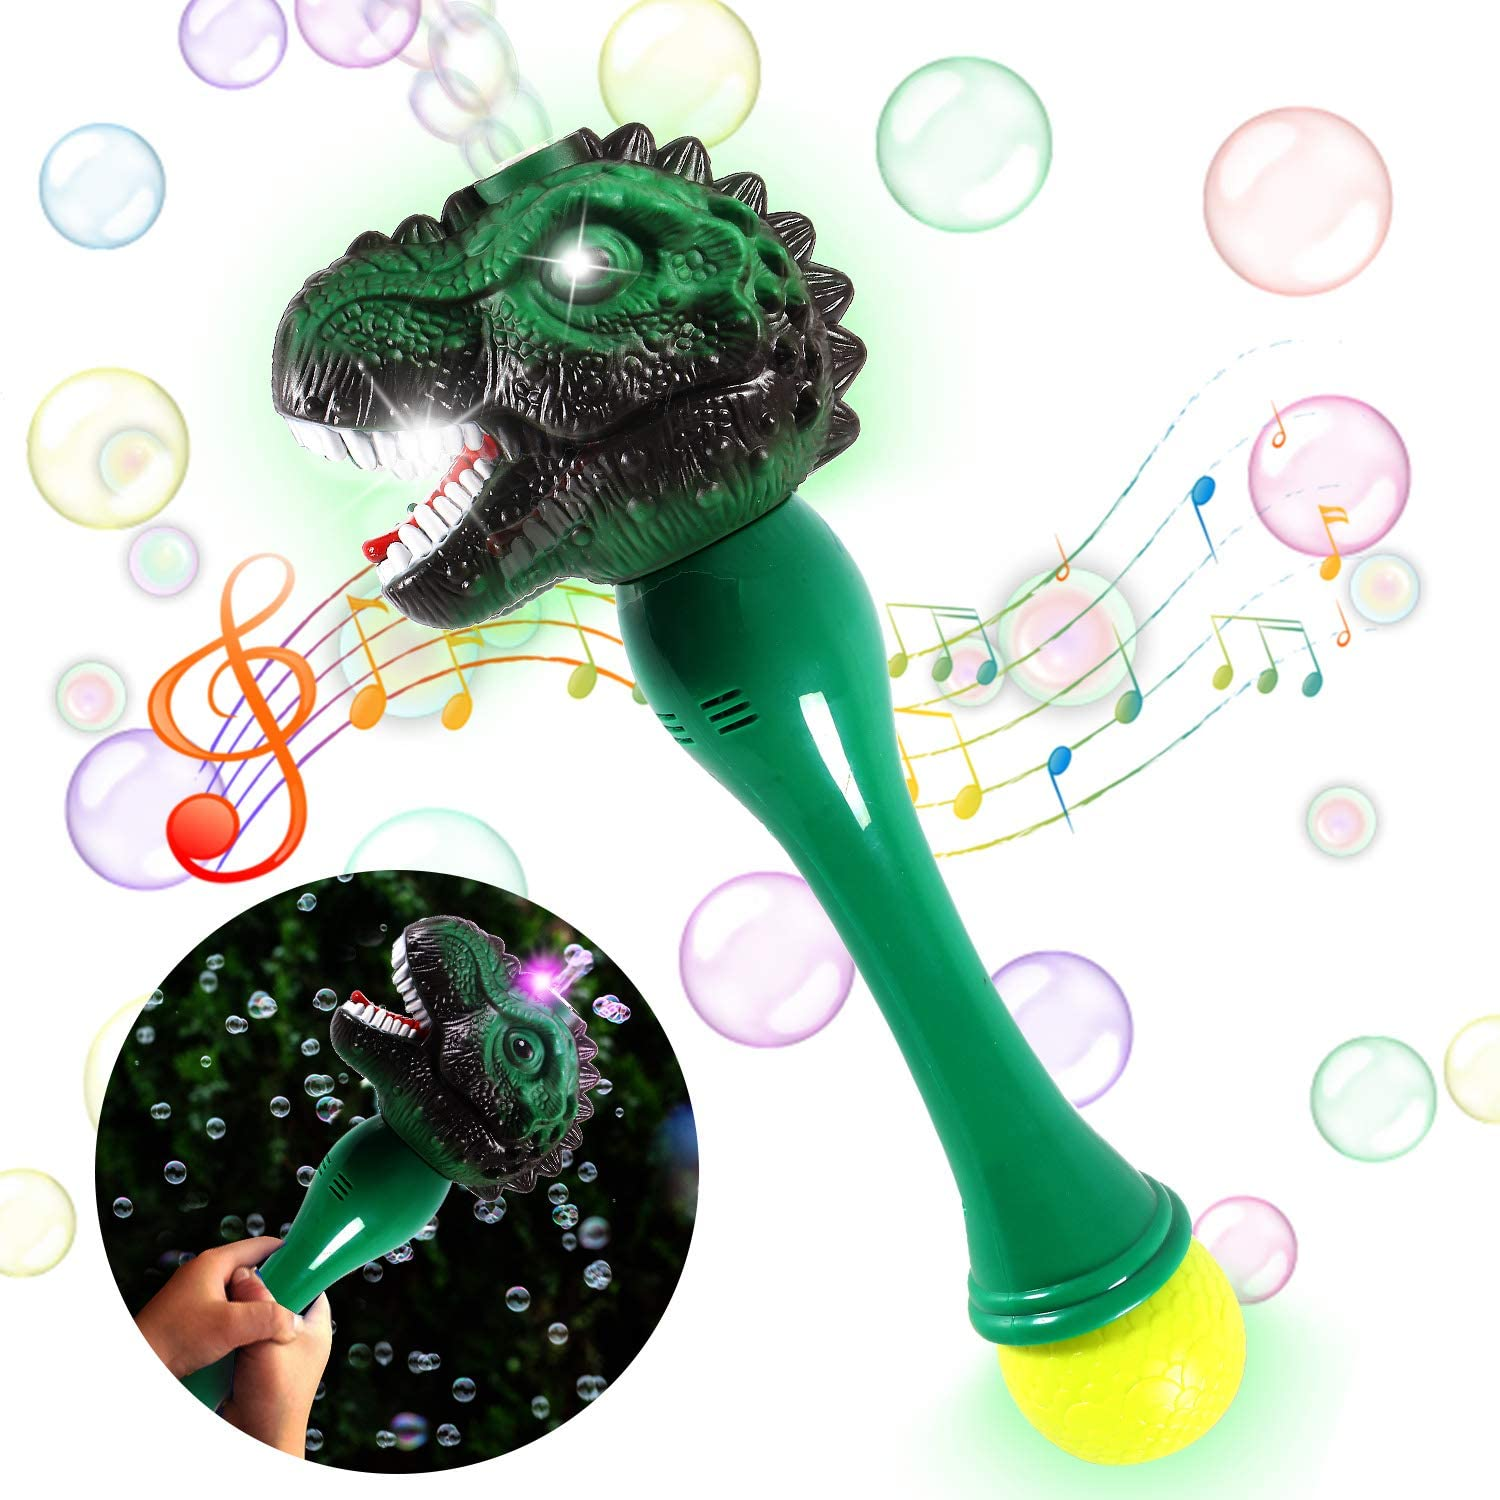 Bubble Machine Dinosaur Automatic Bubble Maker Bubble Wand Toys Light Up Bubbles Blower with LED Lights and Music Party Favors Supplies Birthday Gifts for Kids Boys Girls Children